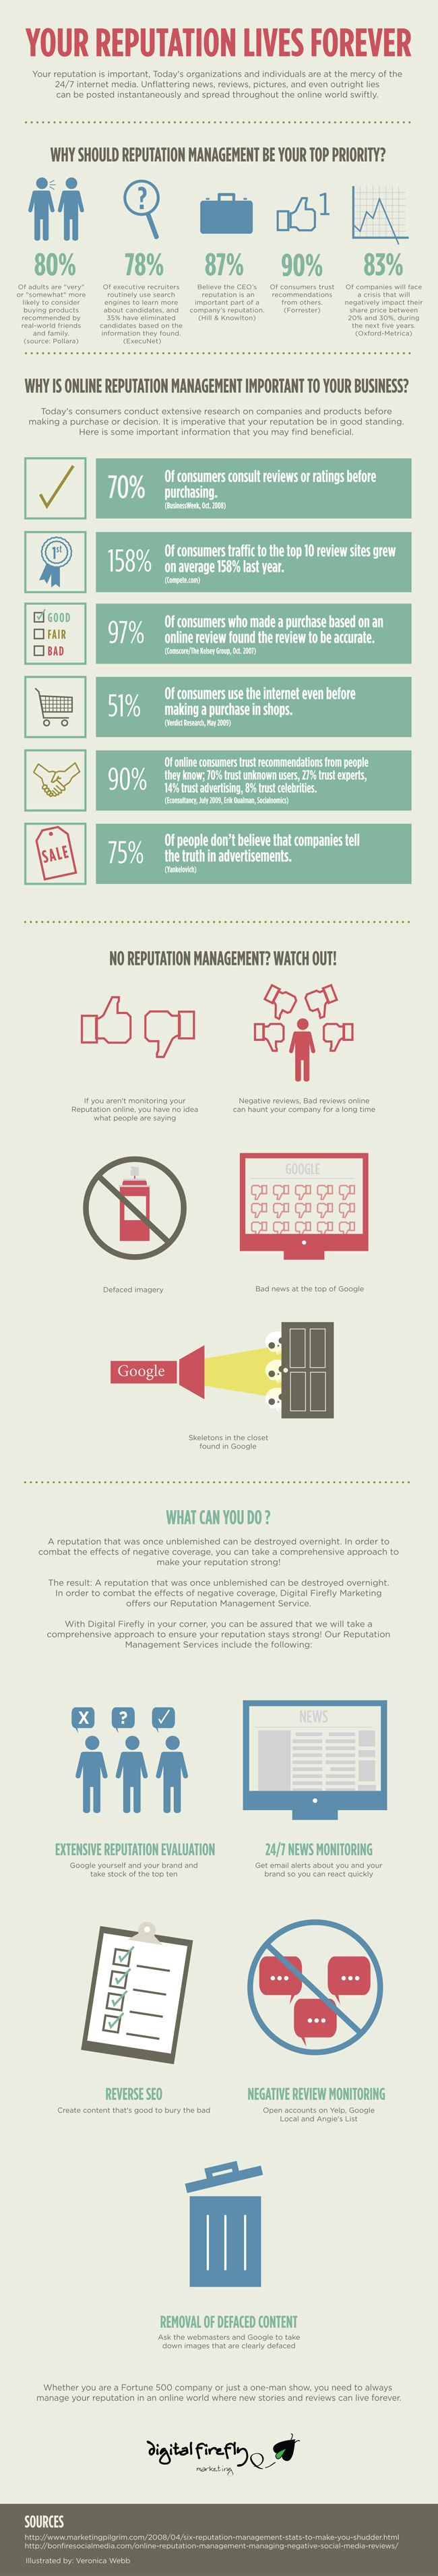 Infographic. Why Social Media Can Make Or Break Your Business